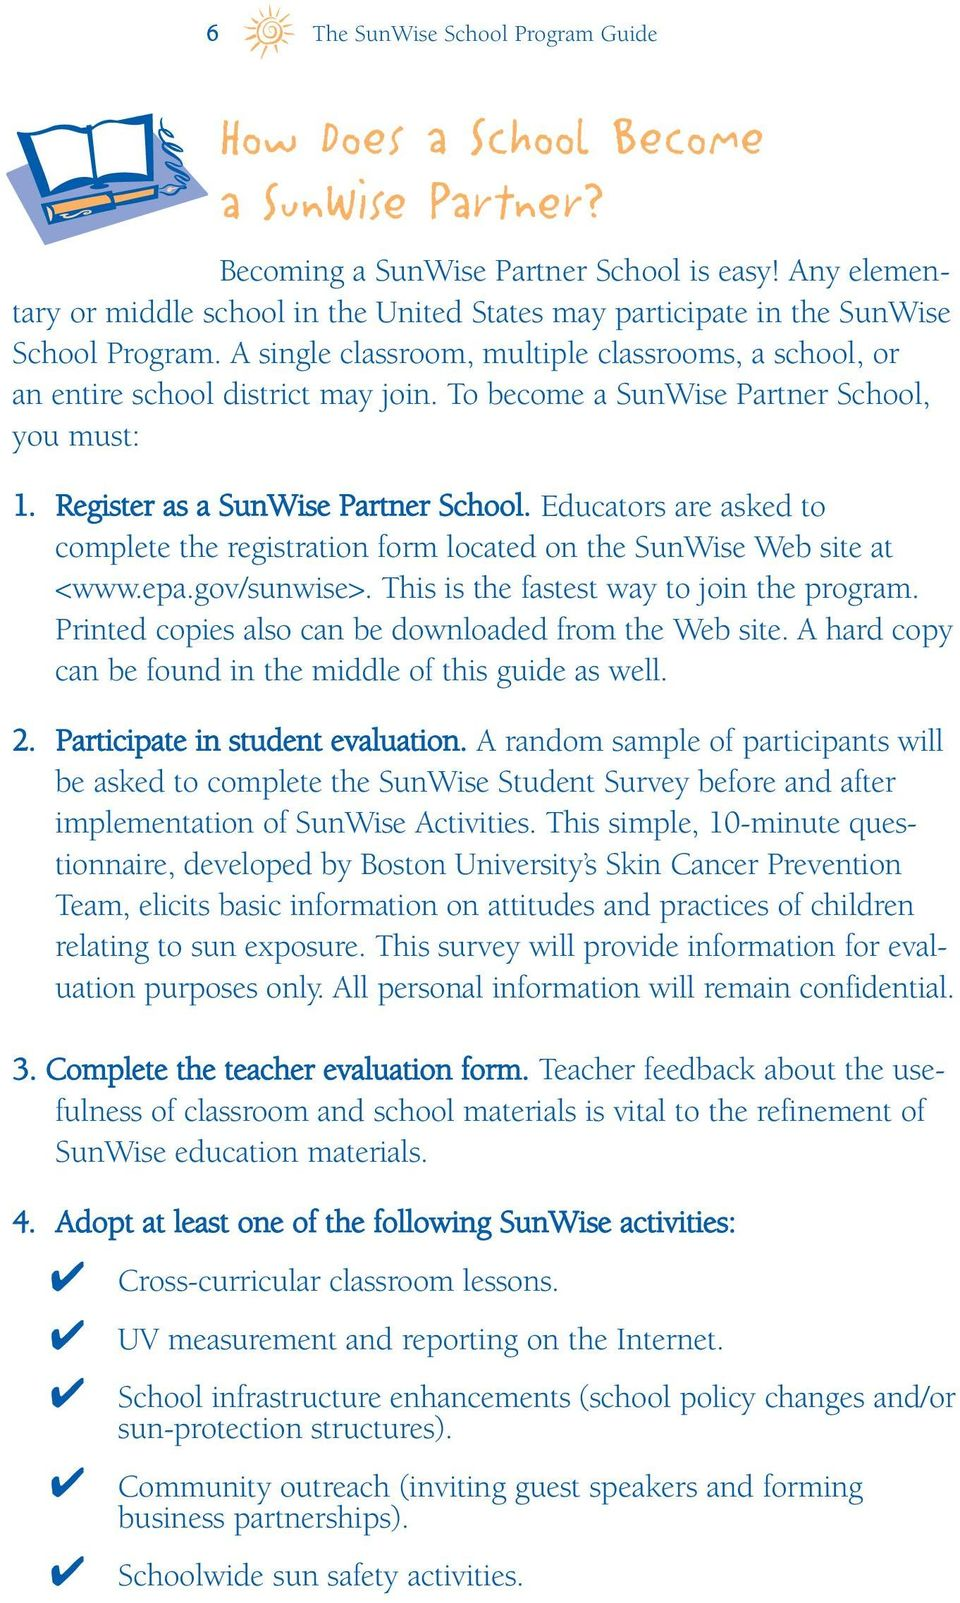 To become a SunWise Partner School, you must: 1. Register as a SunWise Partner School. Educators are asked to complete the registration form located on the SunWise Web site at <www.epa.gov/sunwise>.